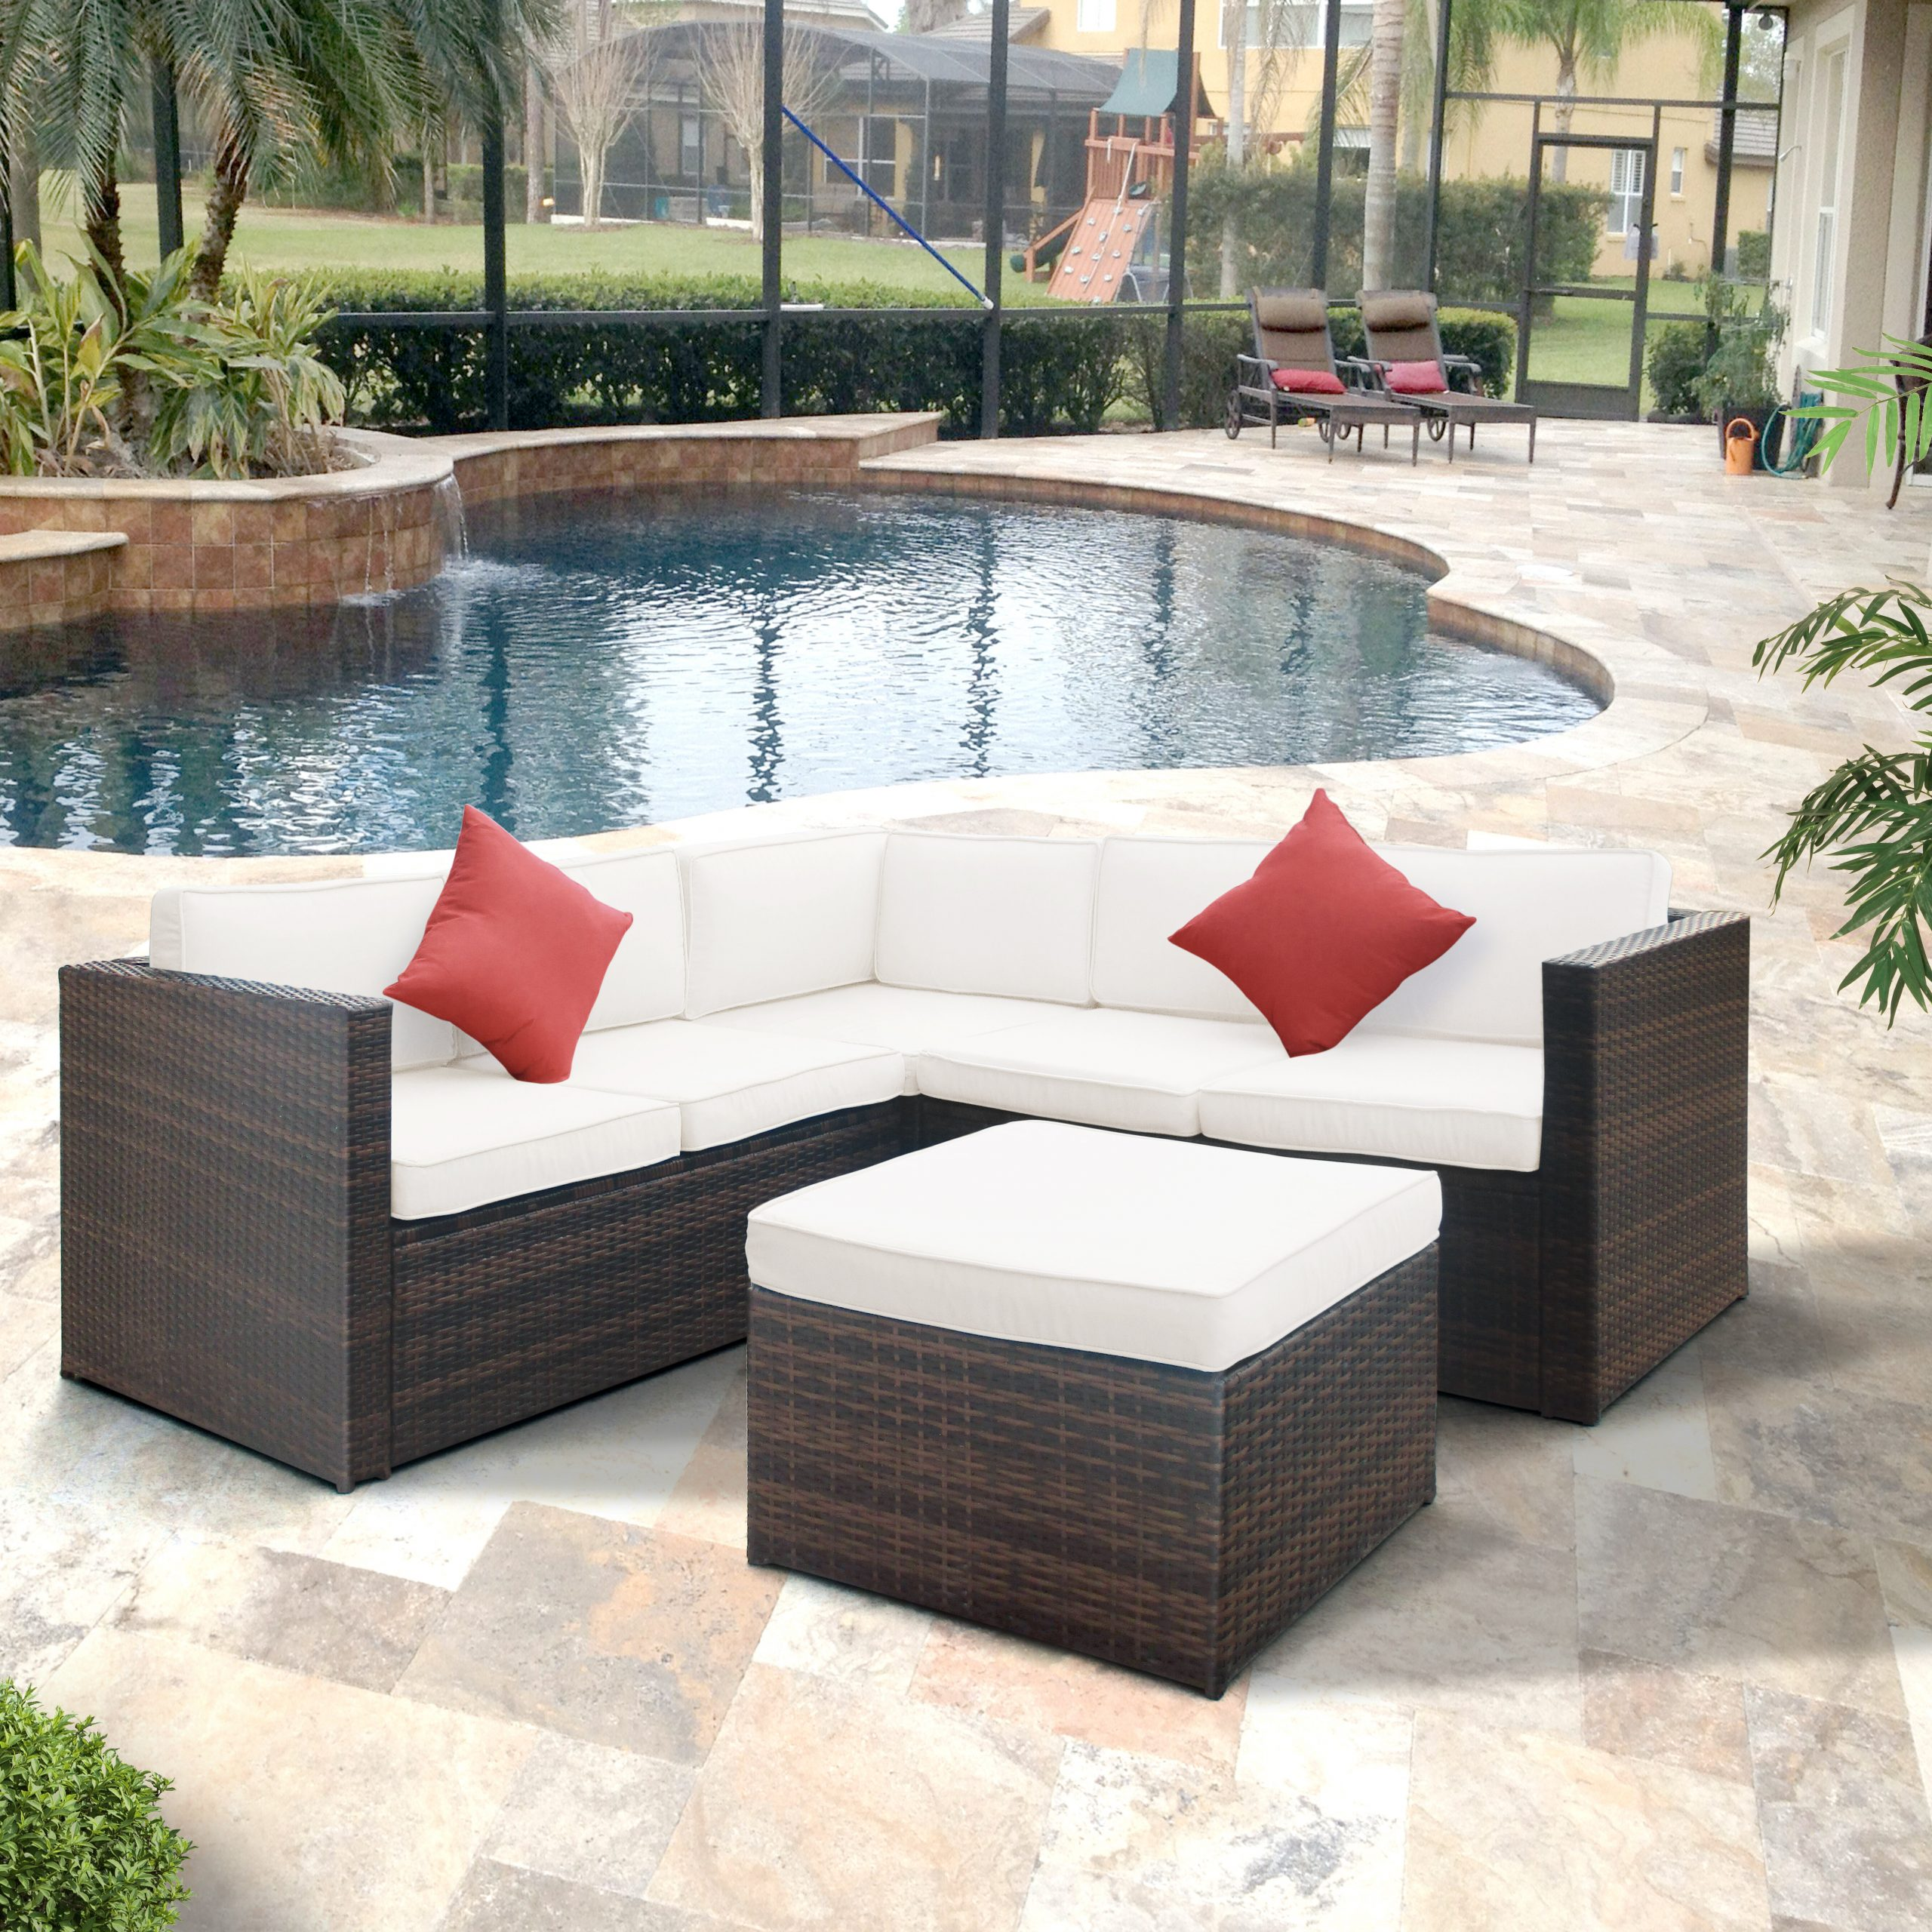 Boyce Outdoor Patio Sectionals With Cushions Regarding Most Up To Date Highland Dunes Lilith Patio Sectional With Cushions (Gallery 8 of 25)